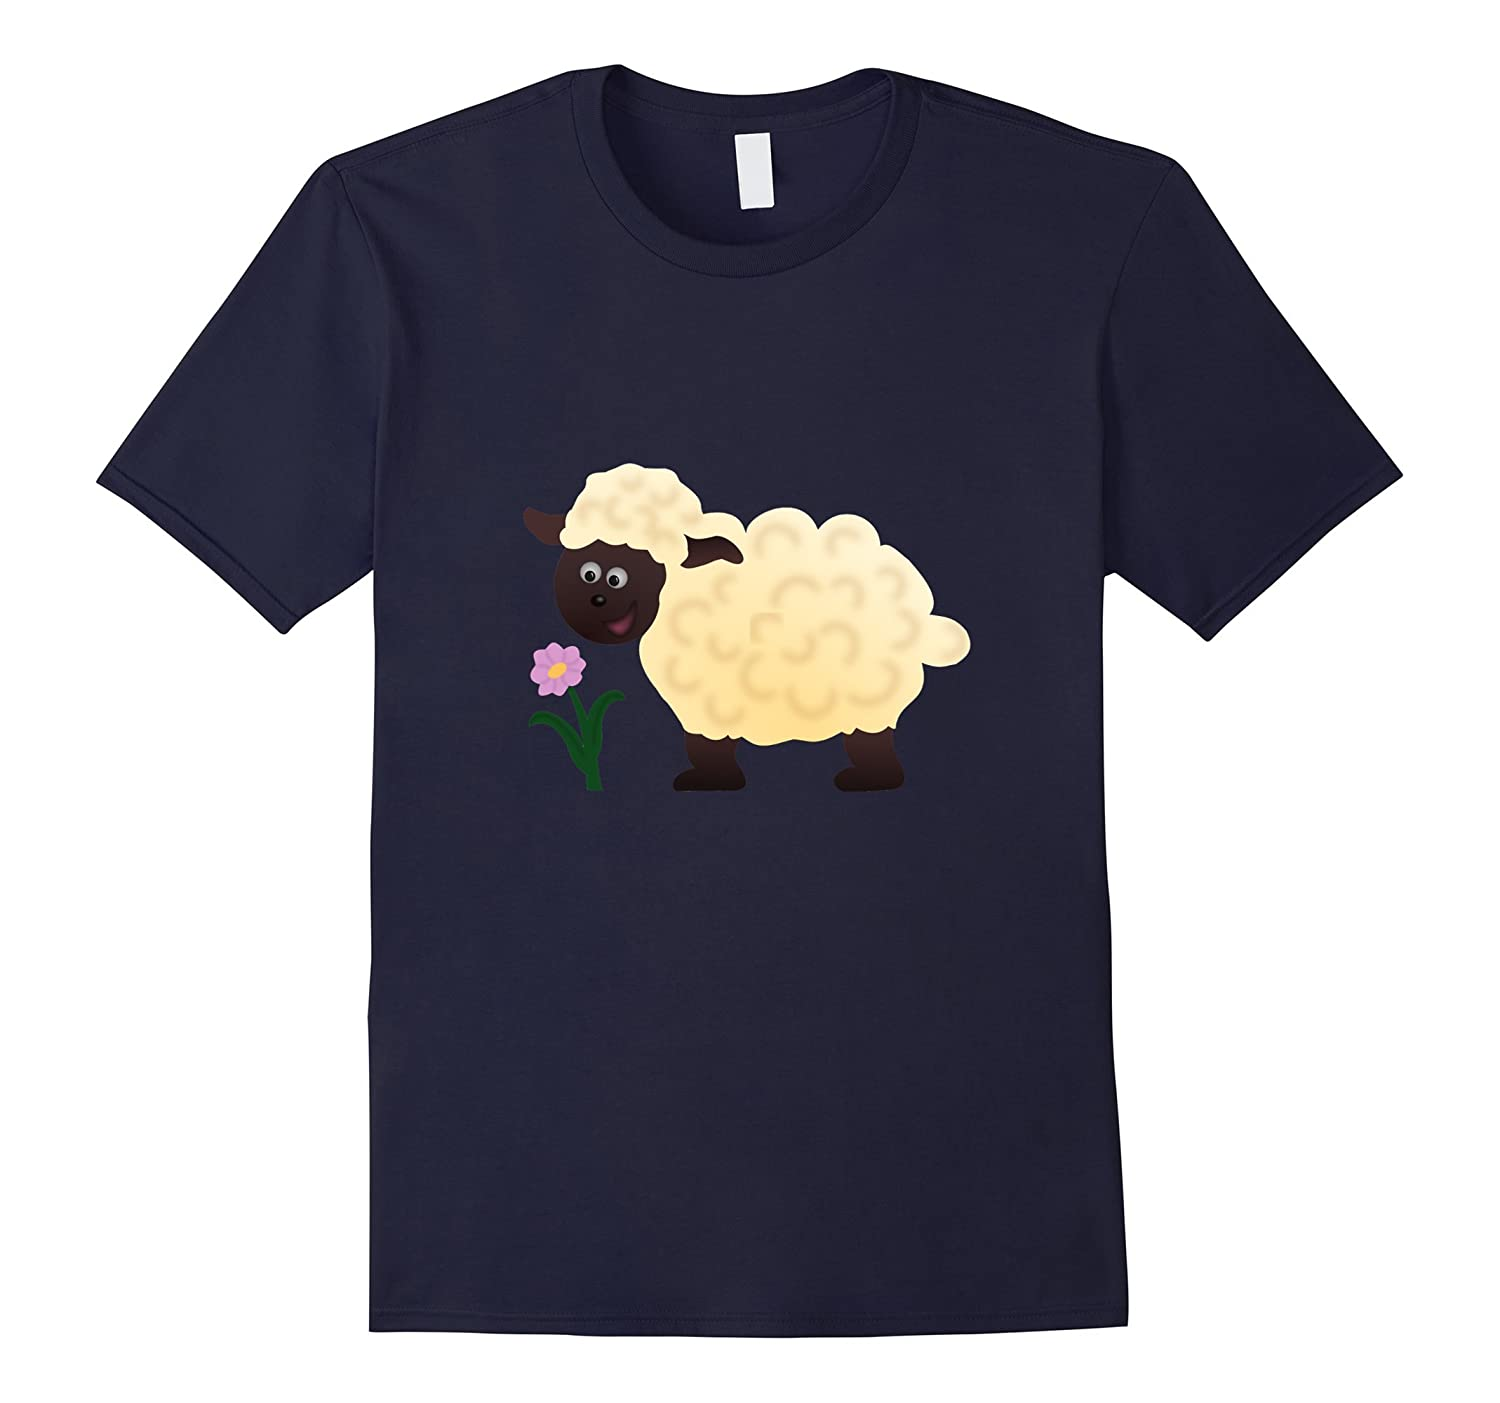 Sheep T-Shirt  Cute Farm Animal  Wool Baa Zoo Goat-PL